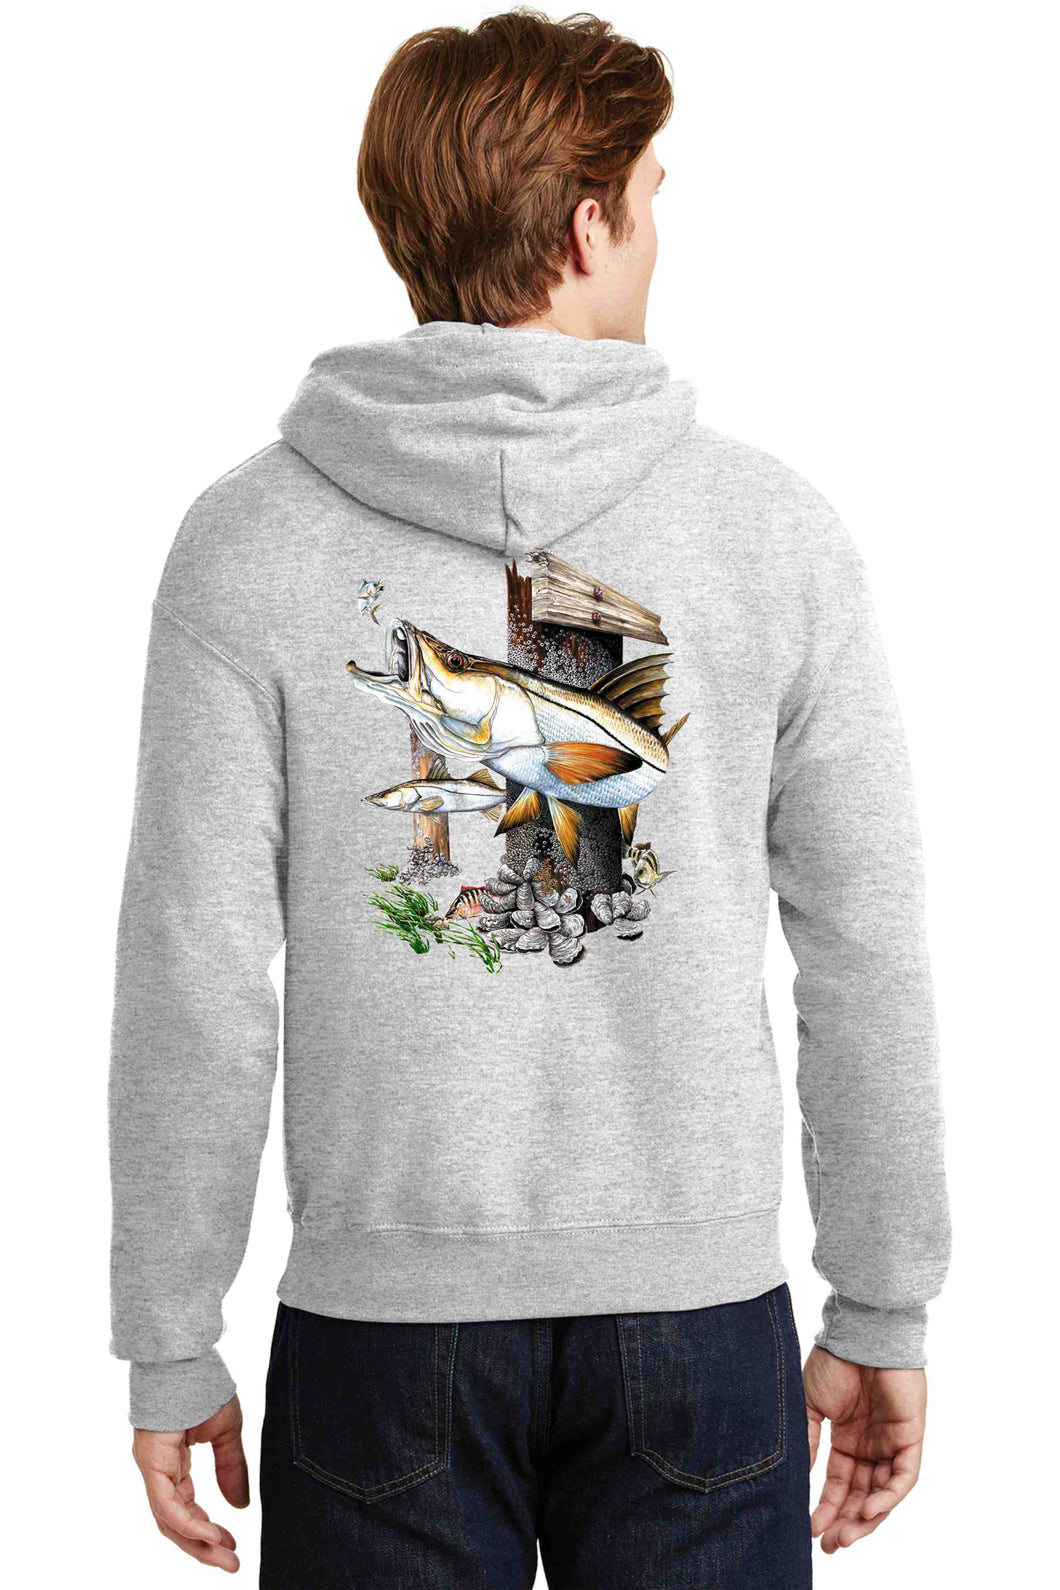 Mens Womens Fishing Hoodie Sweater Sweatshirt Pullover Graphic Tops - E HUB PRODUCTS